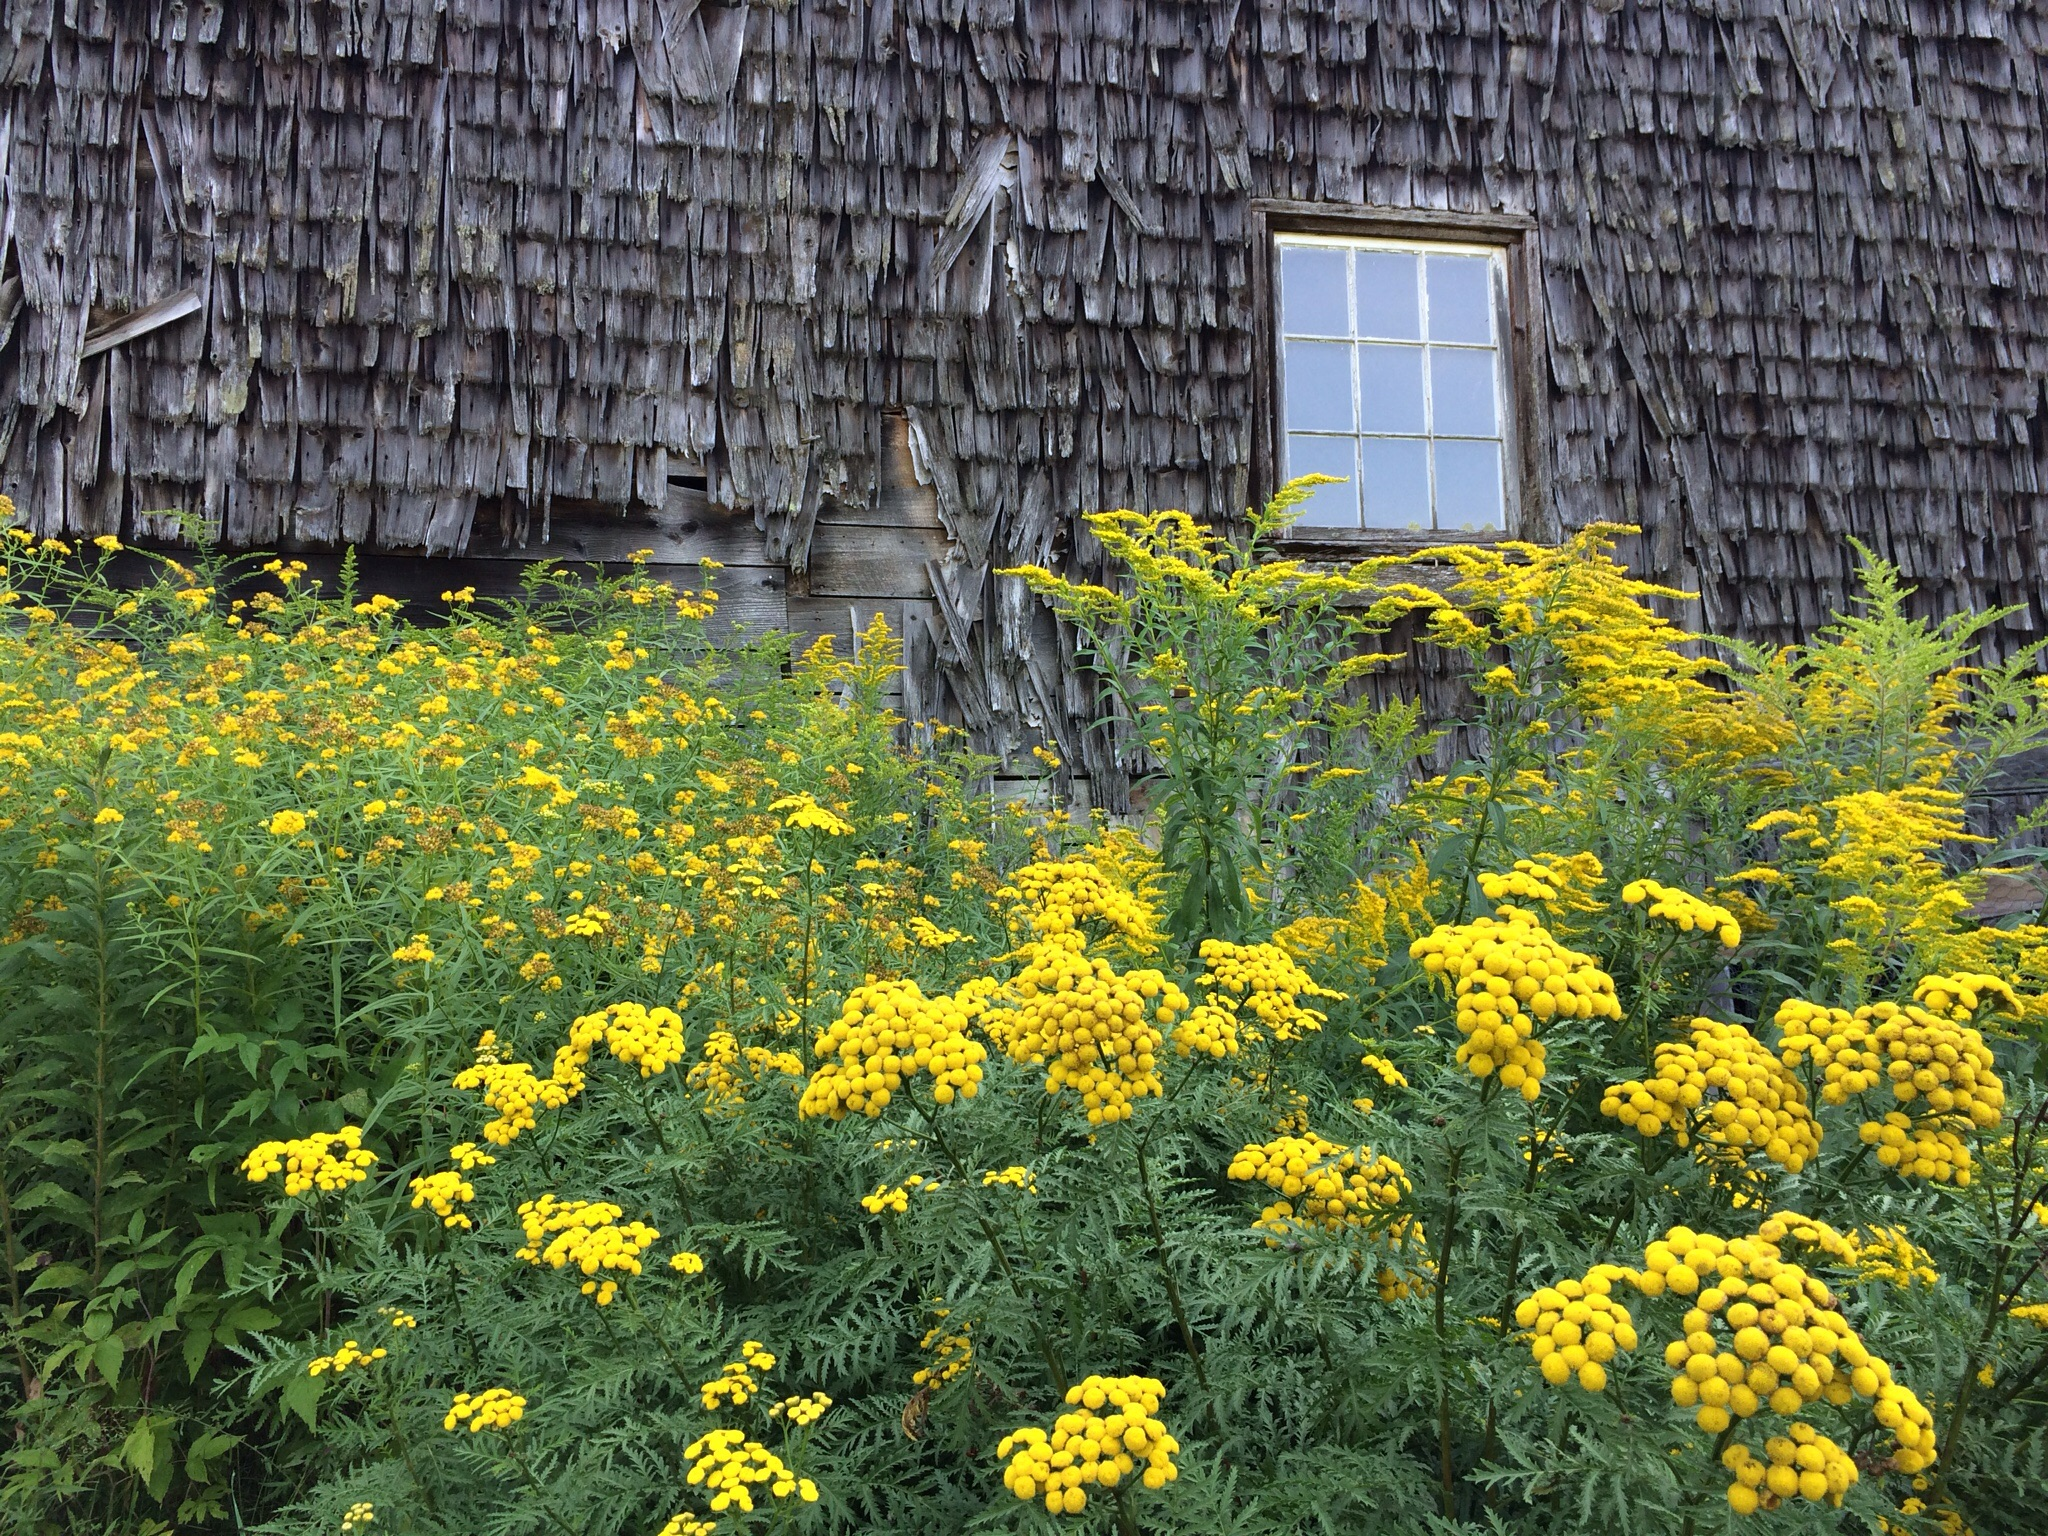 Tansy and goldenrod are the most colorful plants around the property right now.